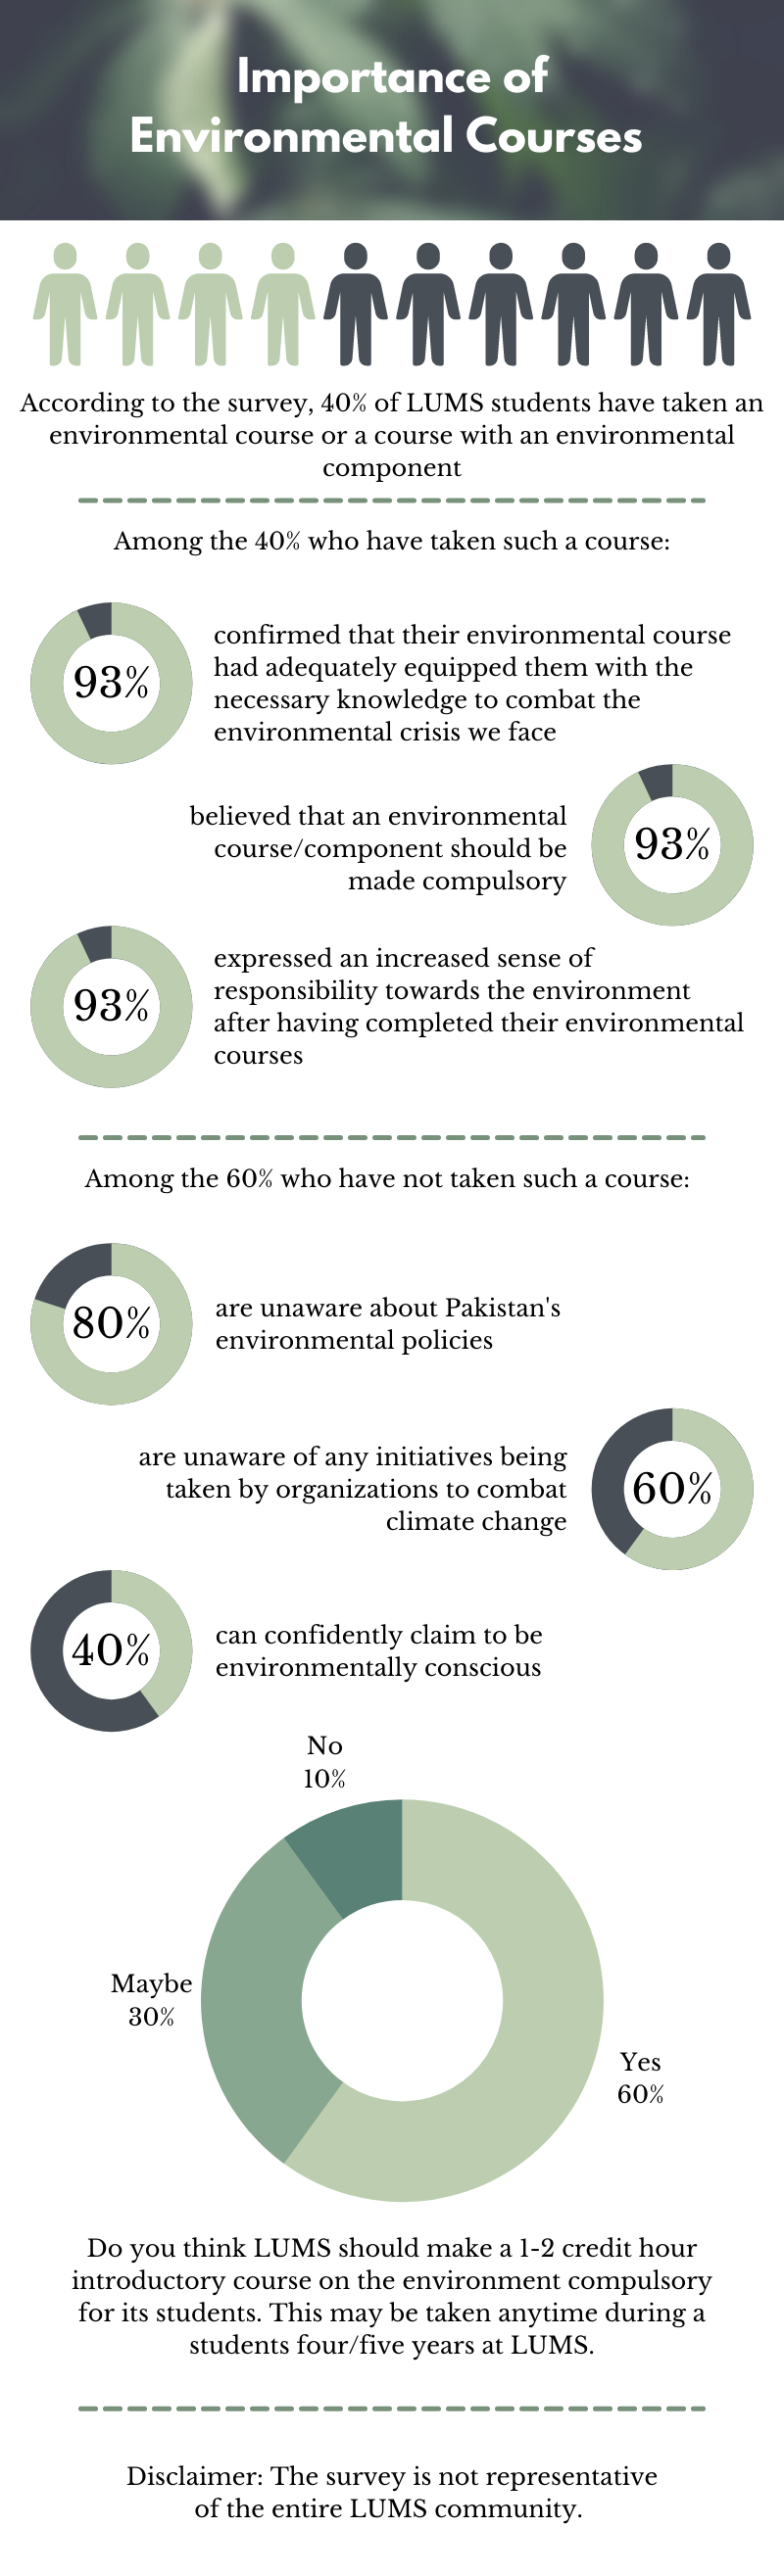 According to the survey, 40% of LUMS students have taken an environmental course or a course with an environmental component